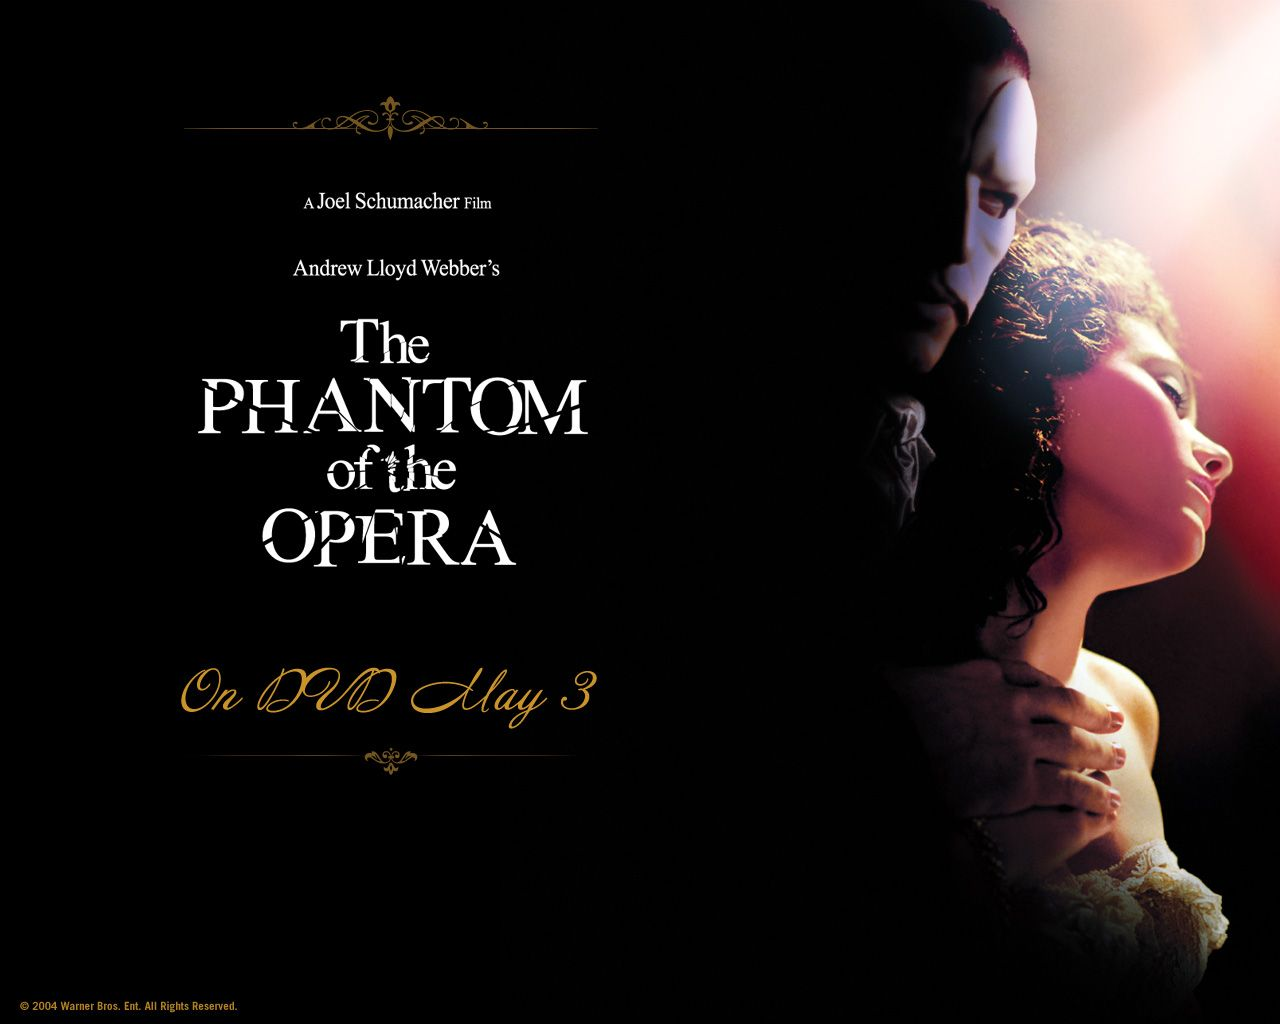 Watch Streaming HD The Phantom of the Opera, starring Gerard Butler, Emmy Rossum, Patrick Wilson, Miranda Richardson. A disfigured musical genius, hidden away in the Paris Opera House, terrorizes the opera company for the unwitting benefit of a young protégée whom he trains and loves. #Drama #Musical #Romance #Thriller http://play.theatrr.com/play.php?movie=0293508